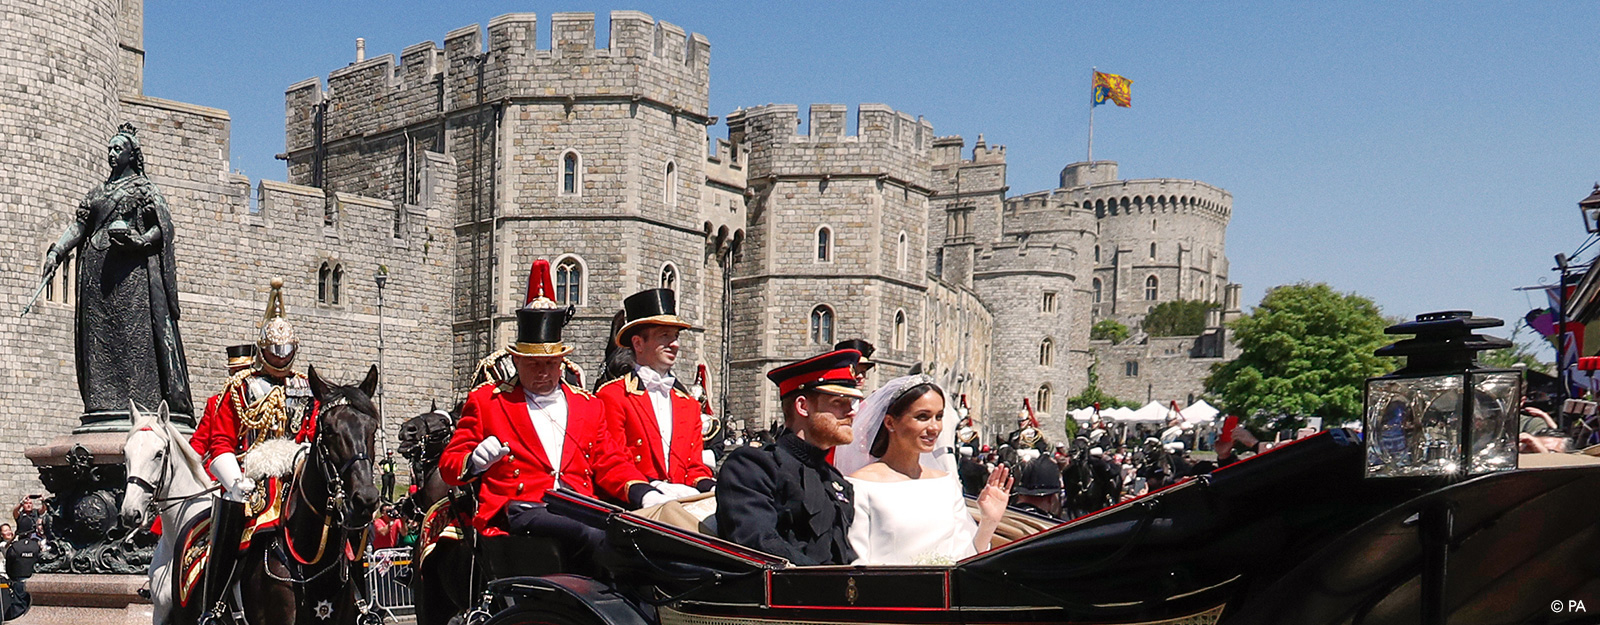 The wedding of The Duke and Duchess of Sussex at Windsor Castle